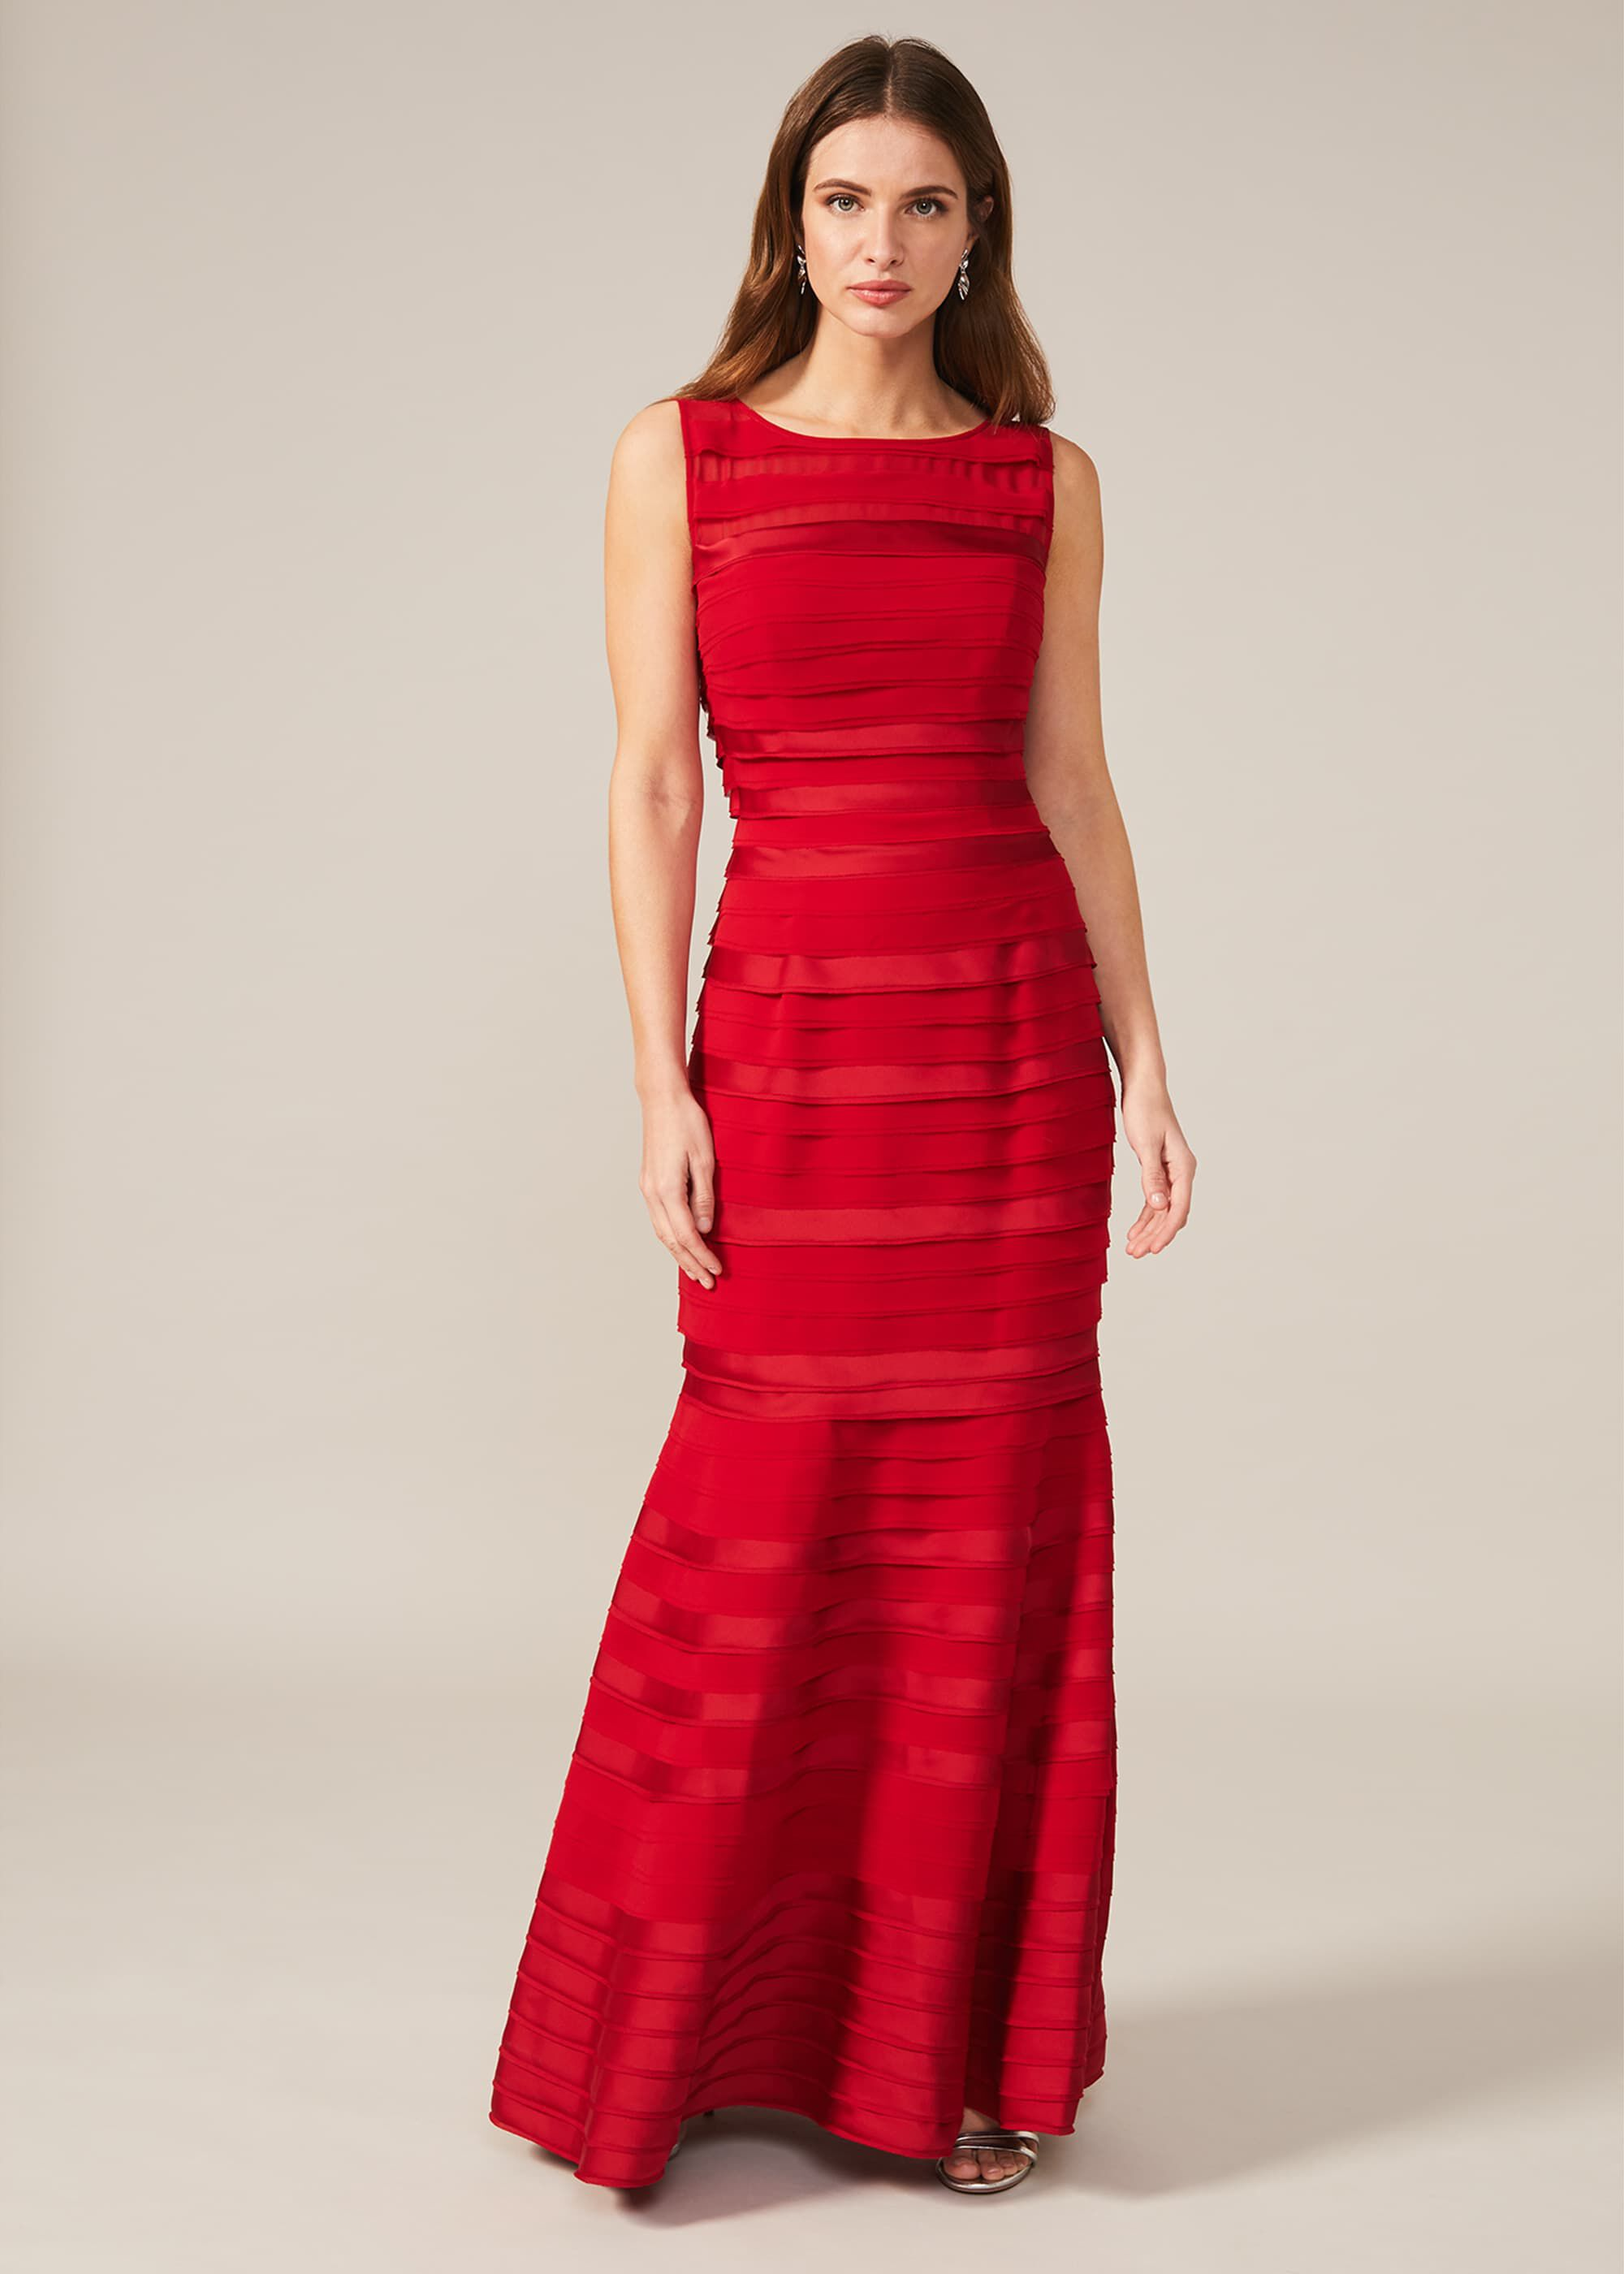 Phase Eight Shannon Layered Dress, Red, Maxi, Occasion Dress